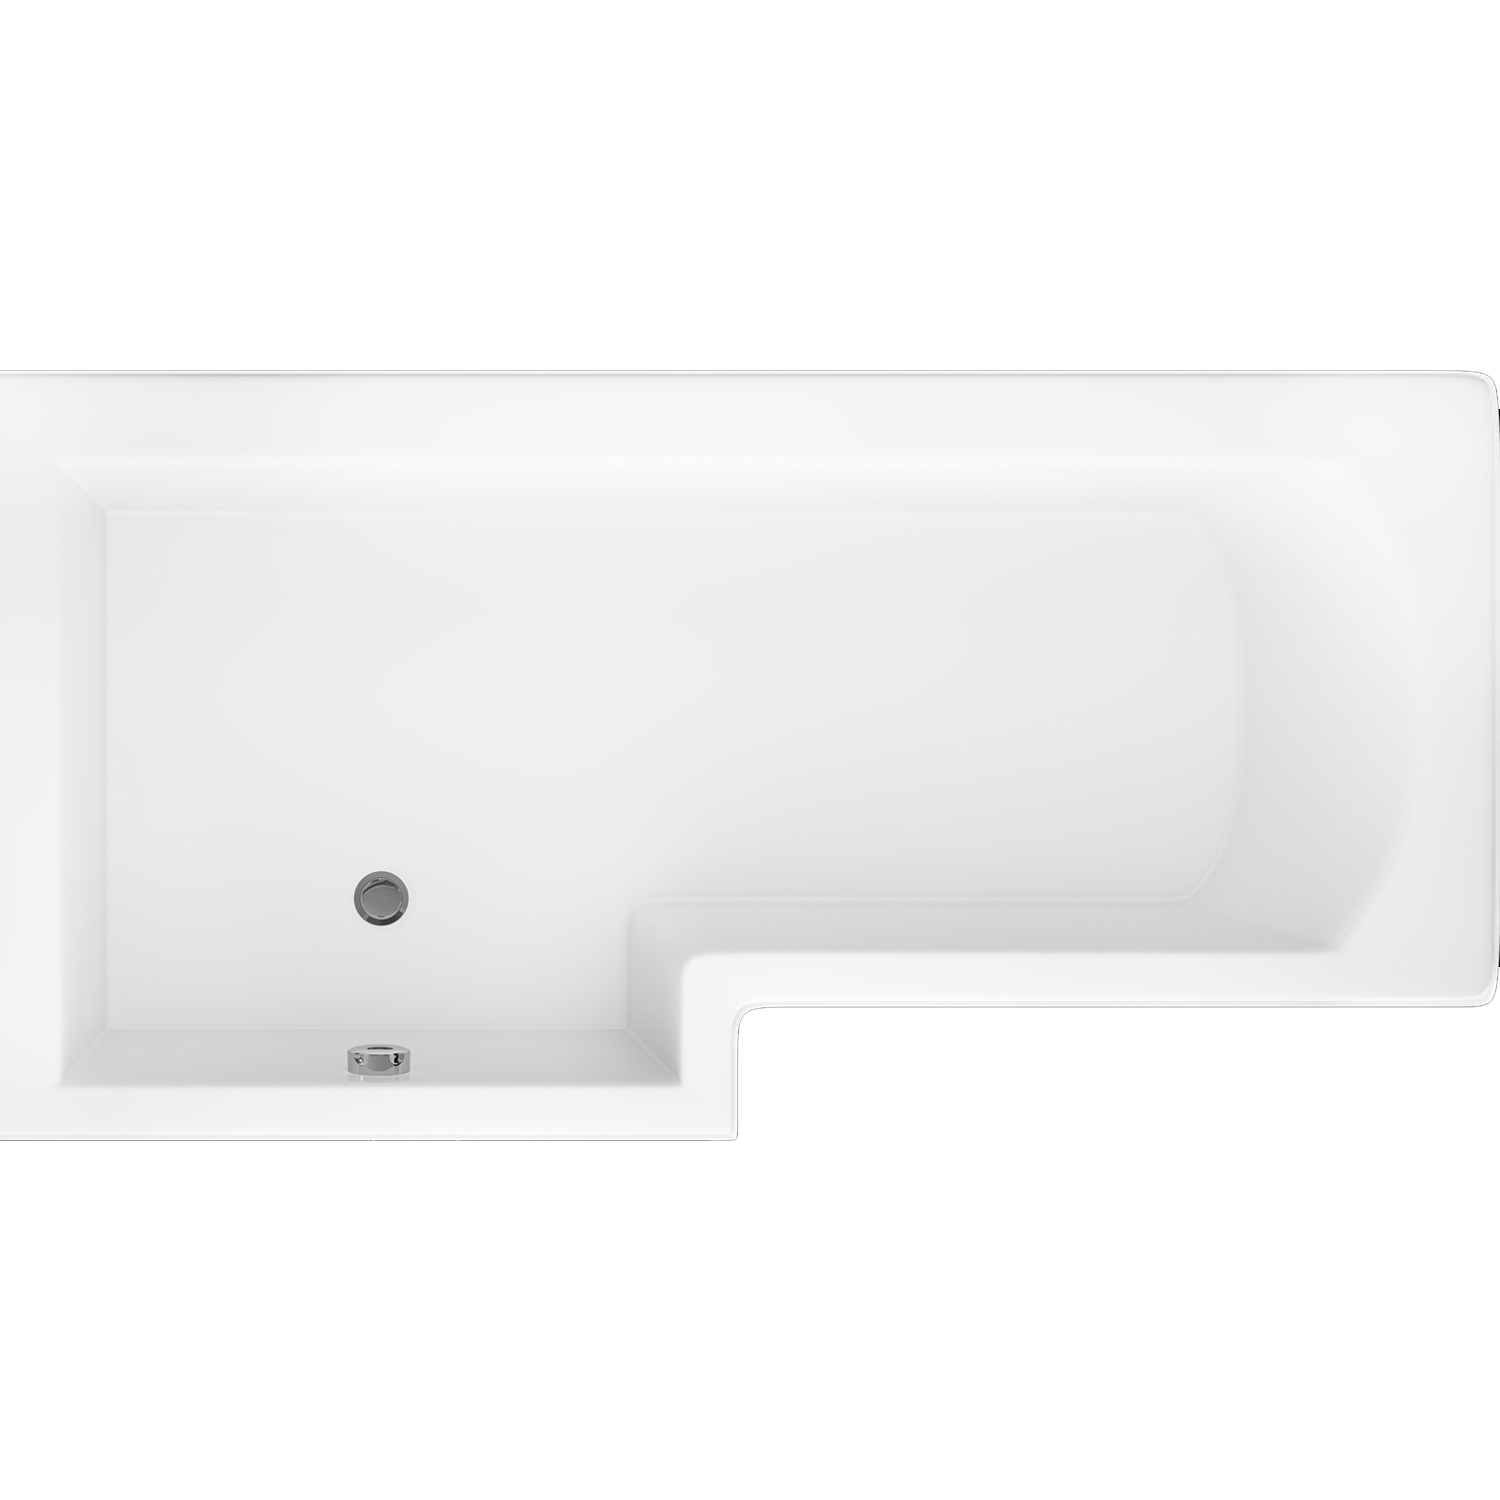 Cali Halle L-Shaped Shower Bath 1500mm x 700mm/850mm Left Handed-0